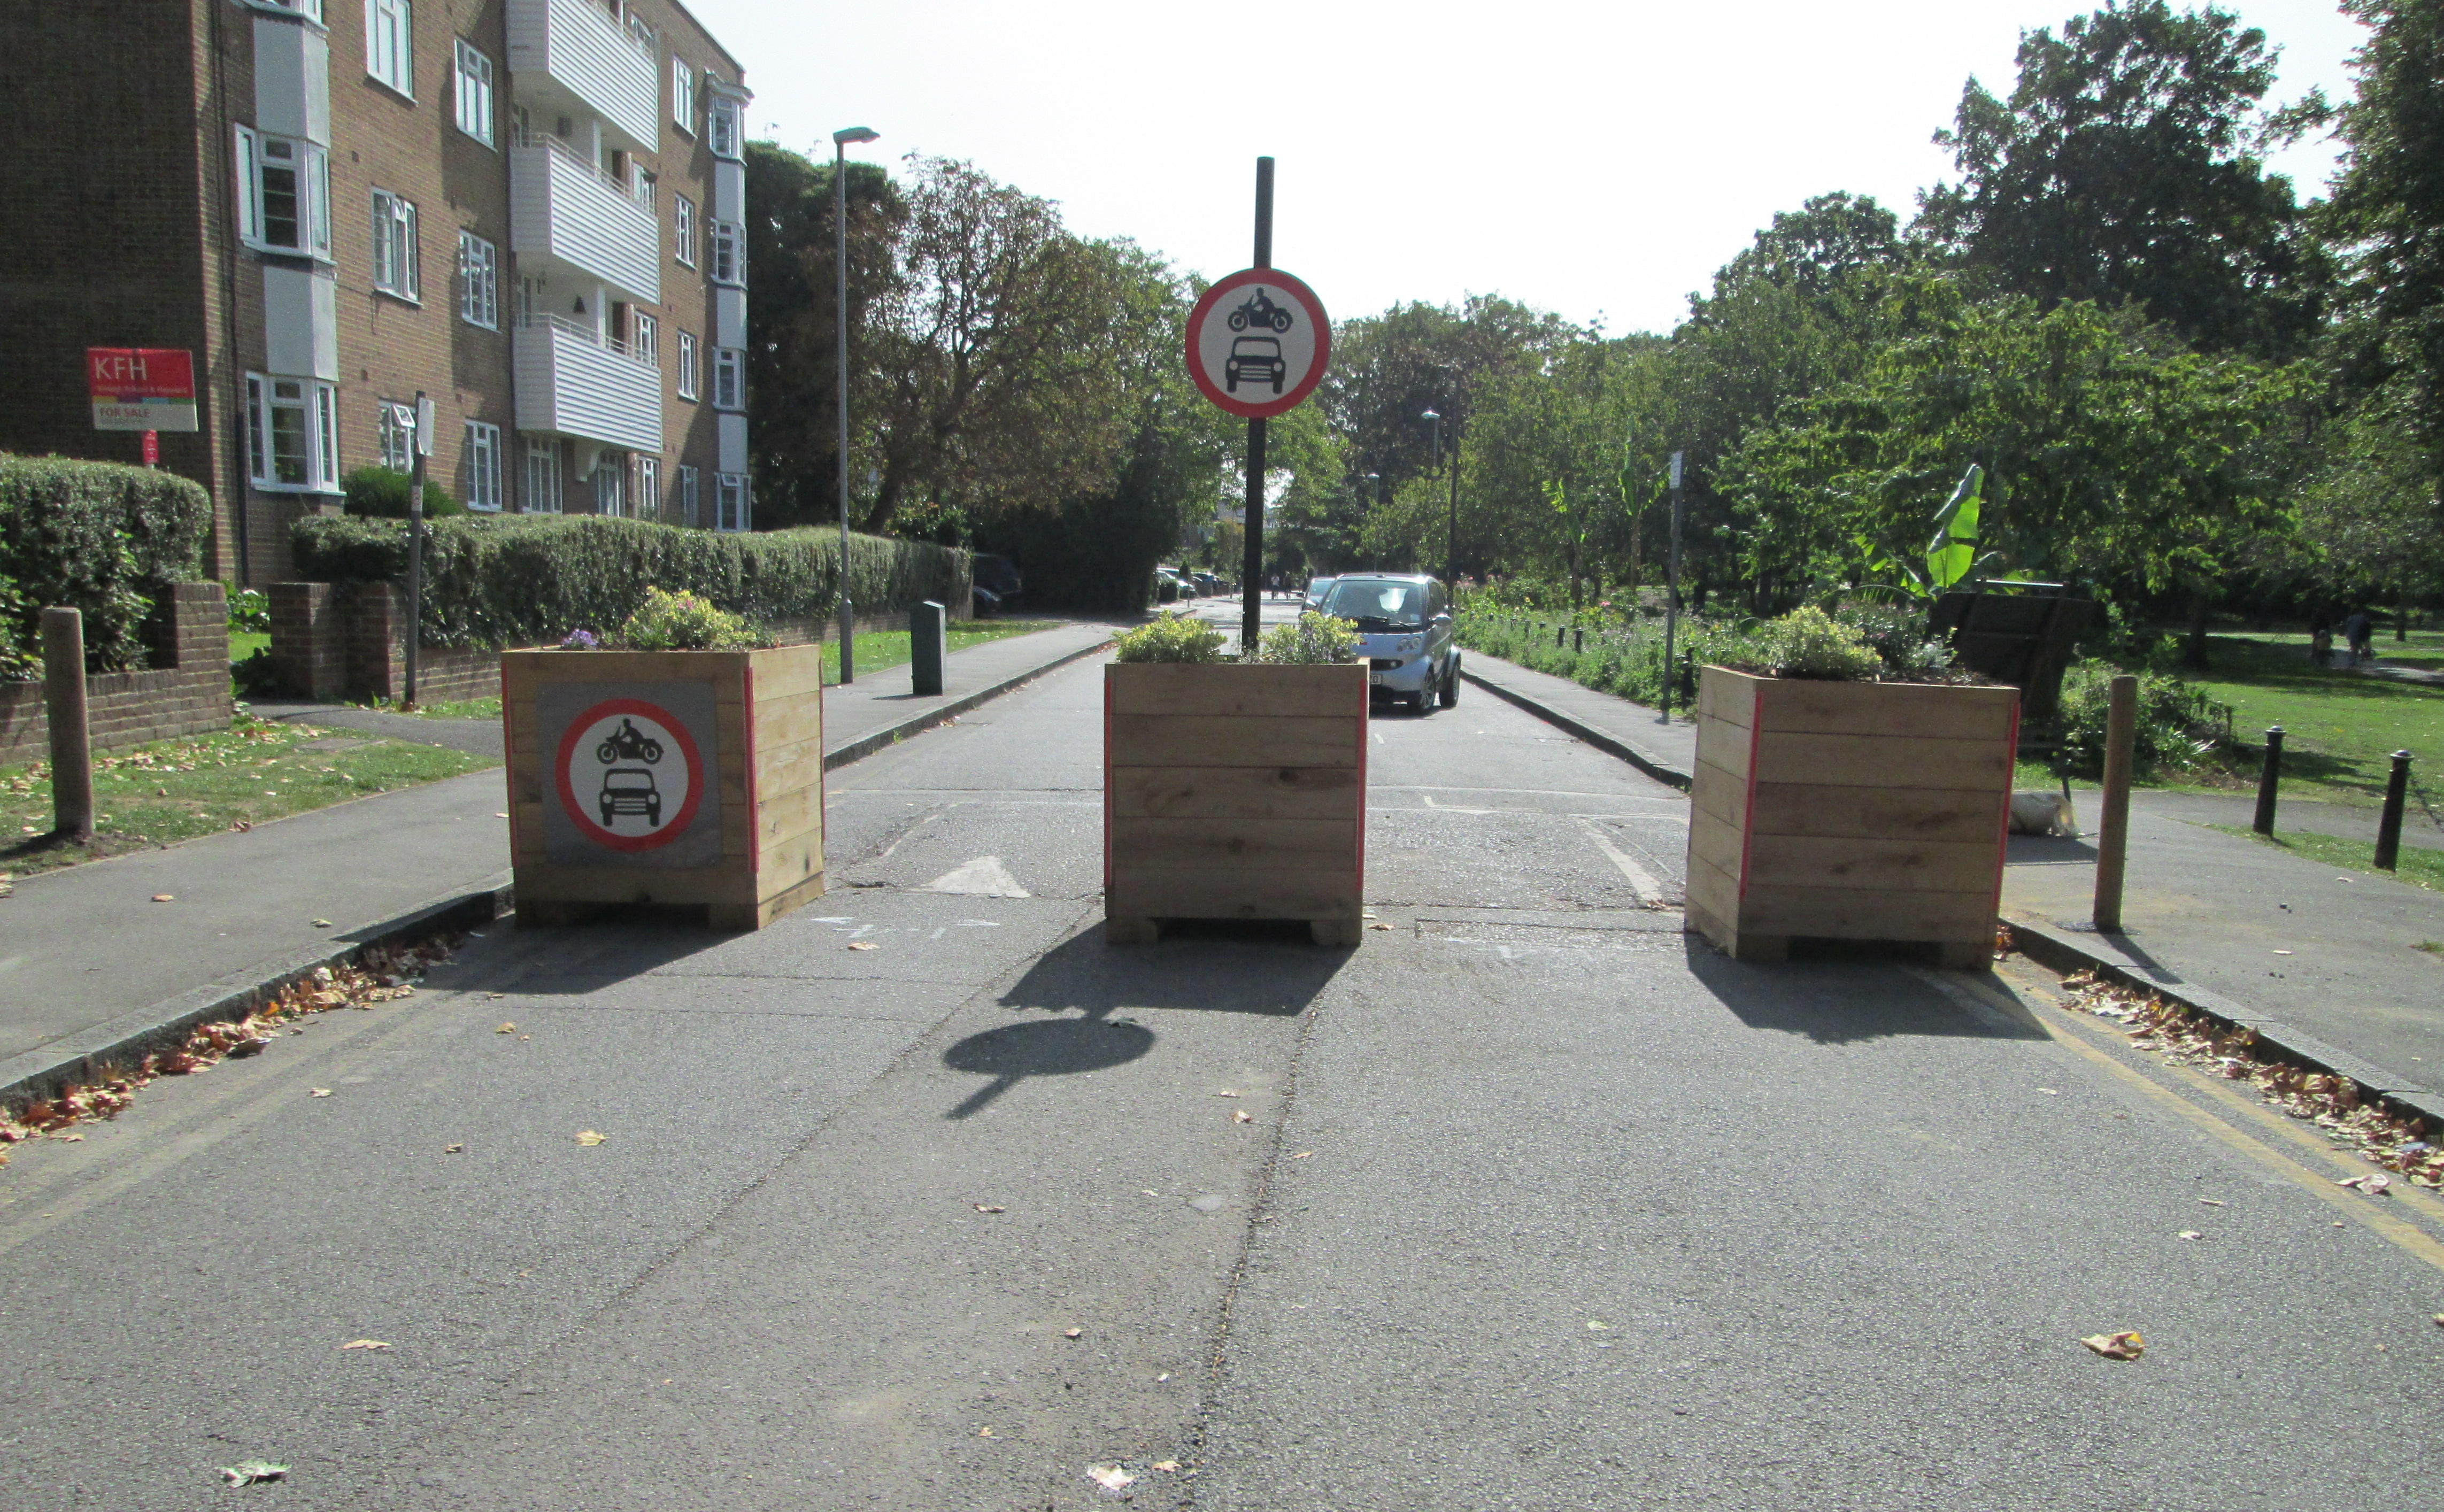 Lower Ham Road Low Traffic Neighbourhood Scheme showing three planters acting as a barrier across the road but with space for pedestrians and cyclists to pass.